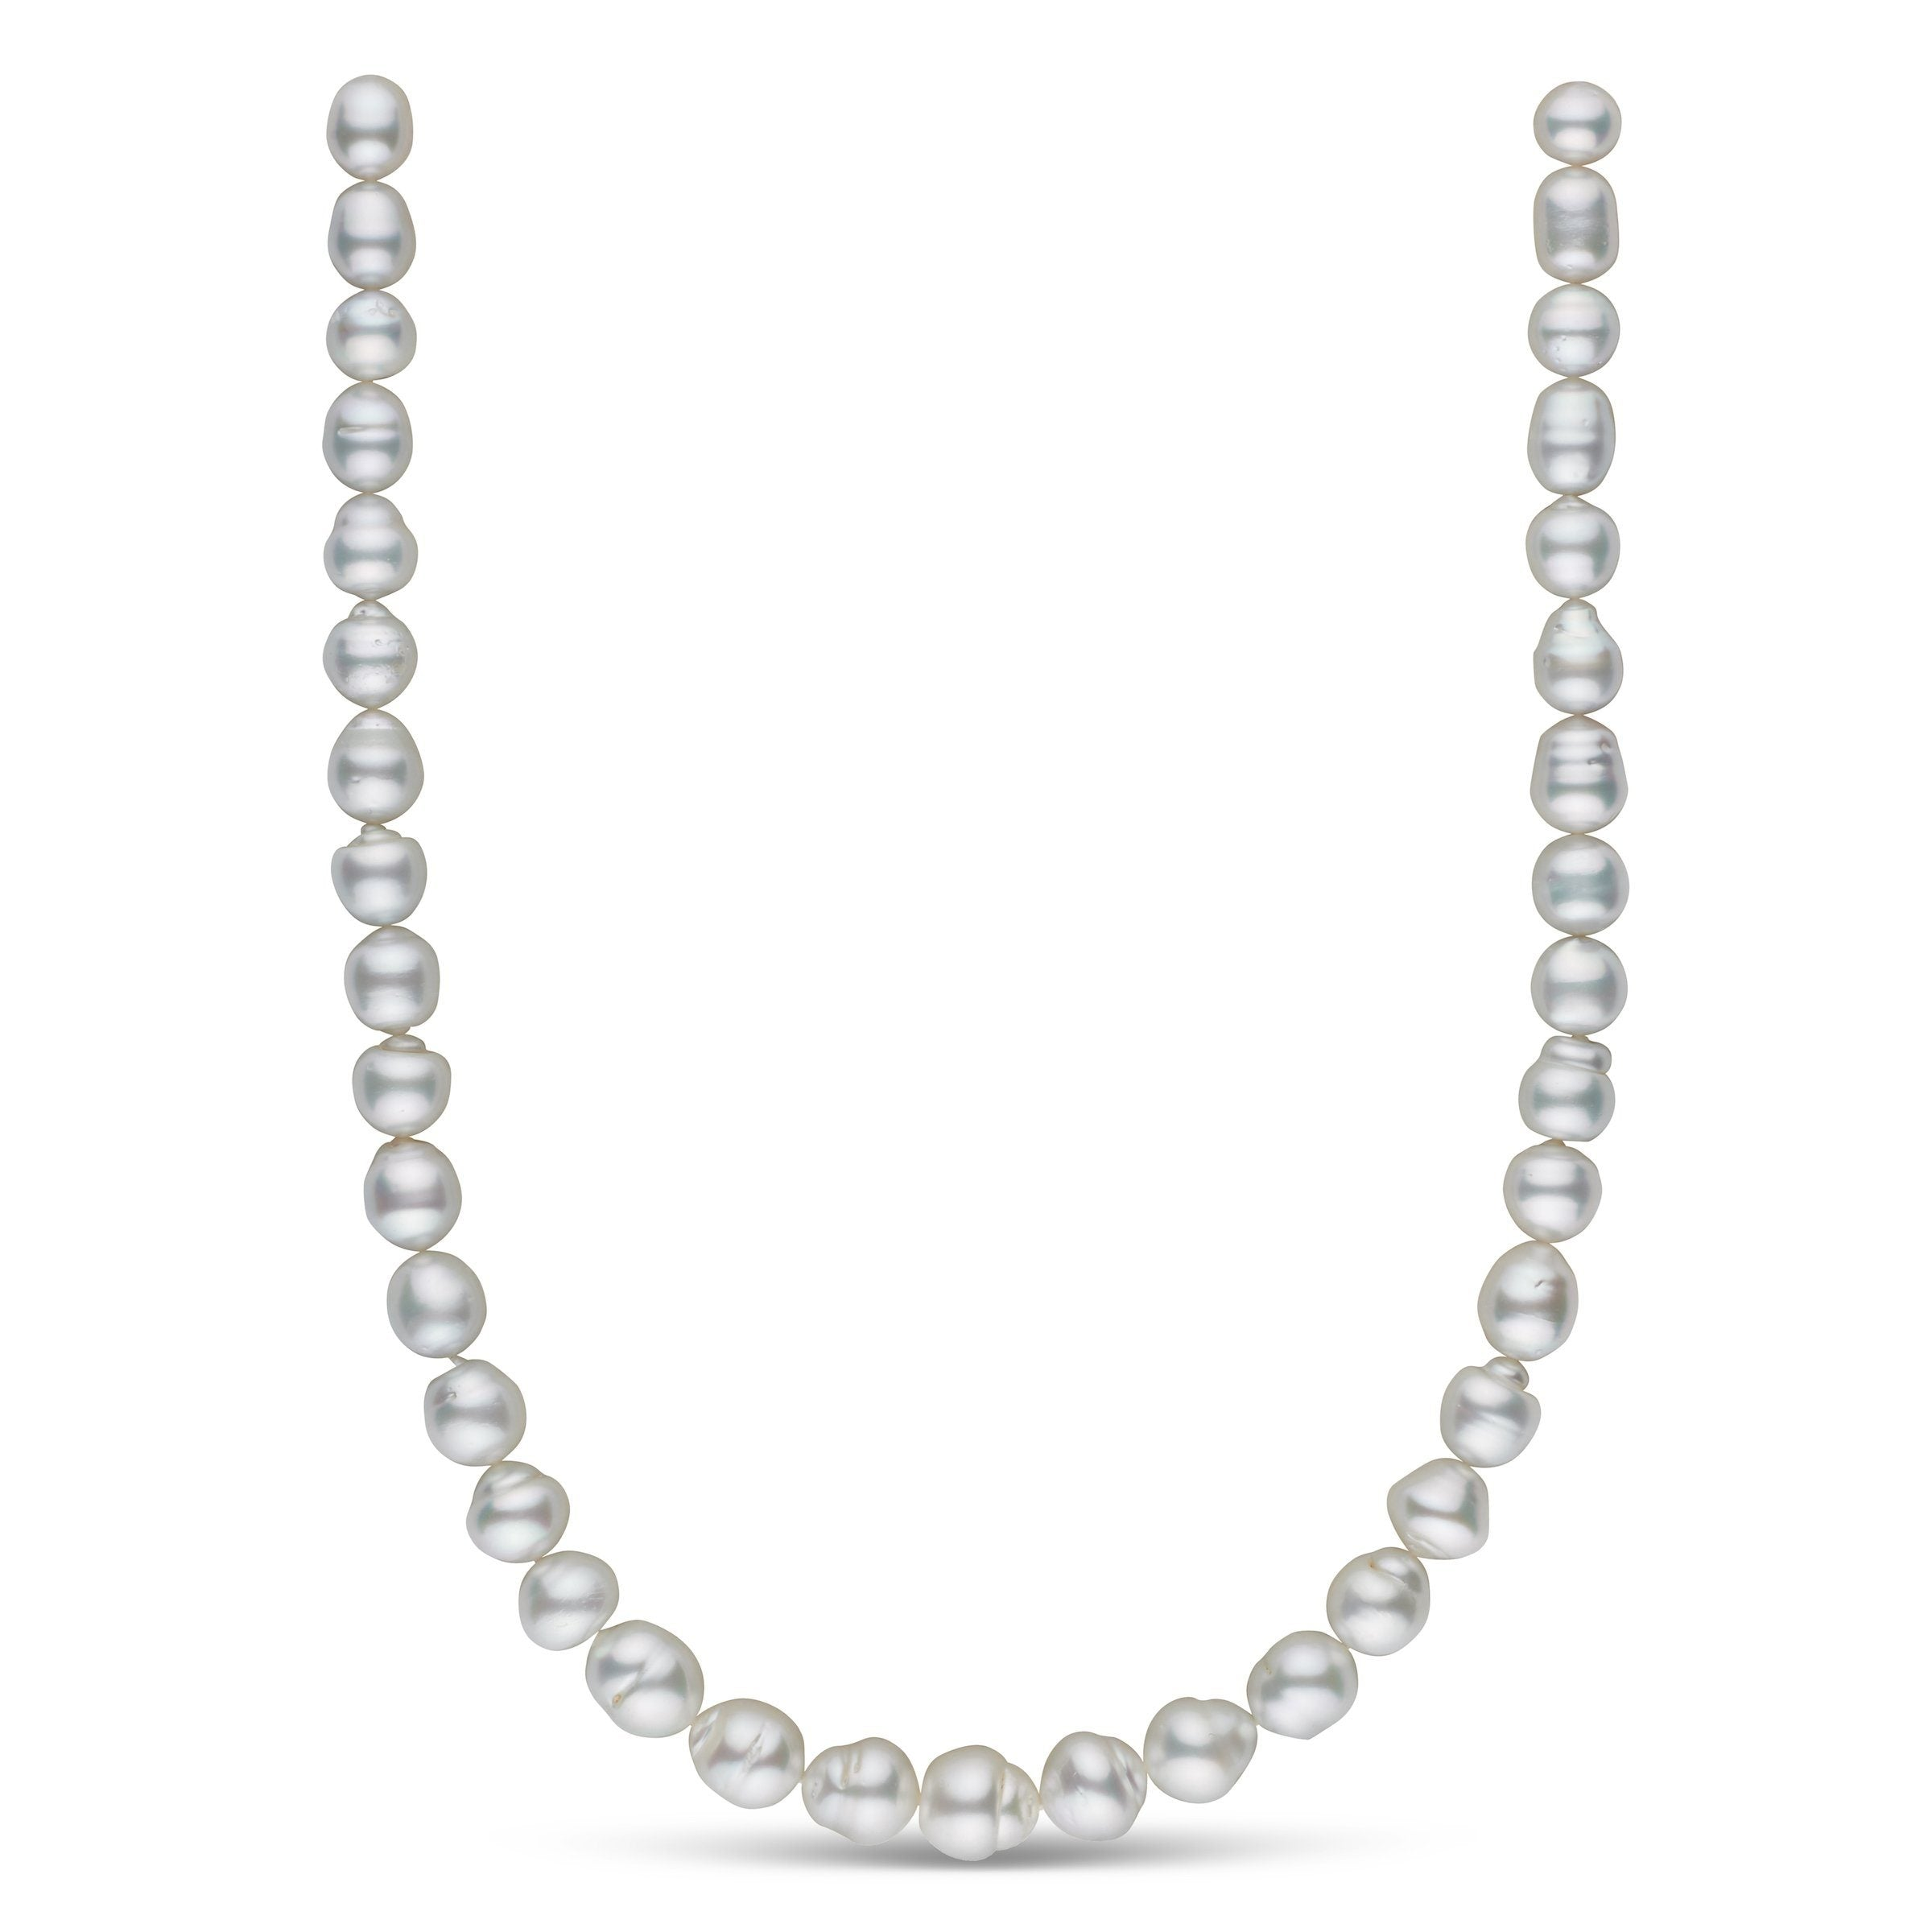 8.8-11.8 mm AA+/AAA White South Sea Baroque Necklace